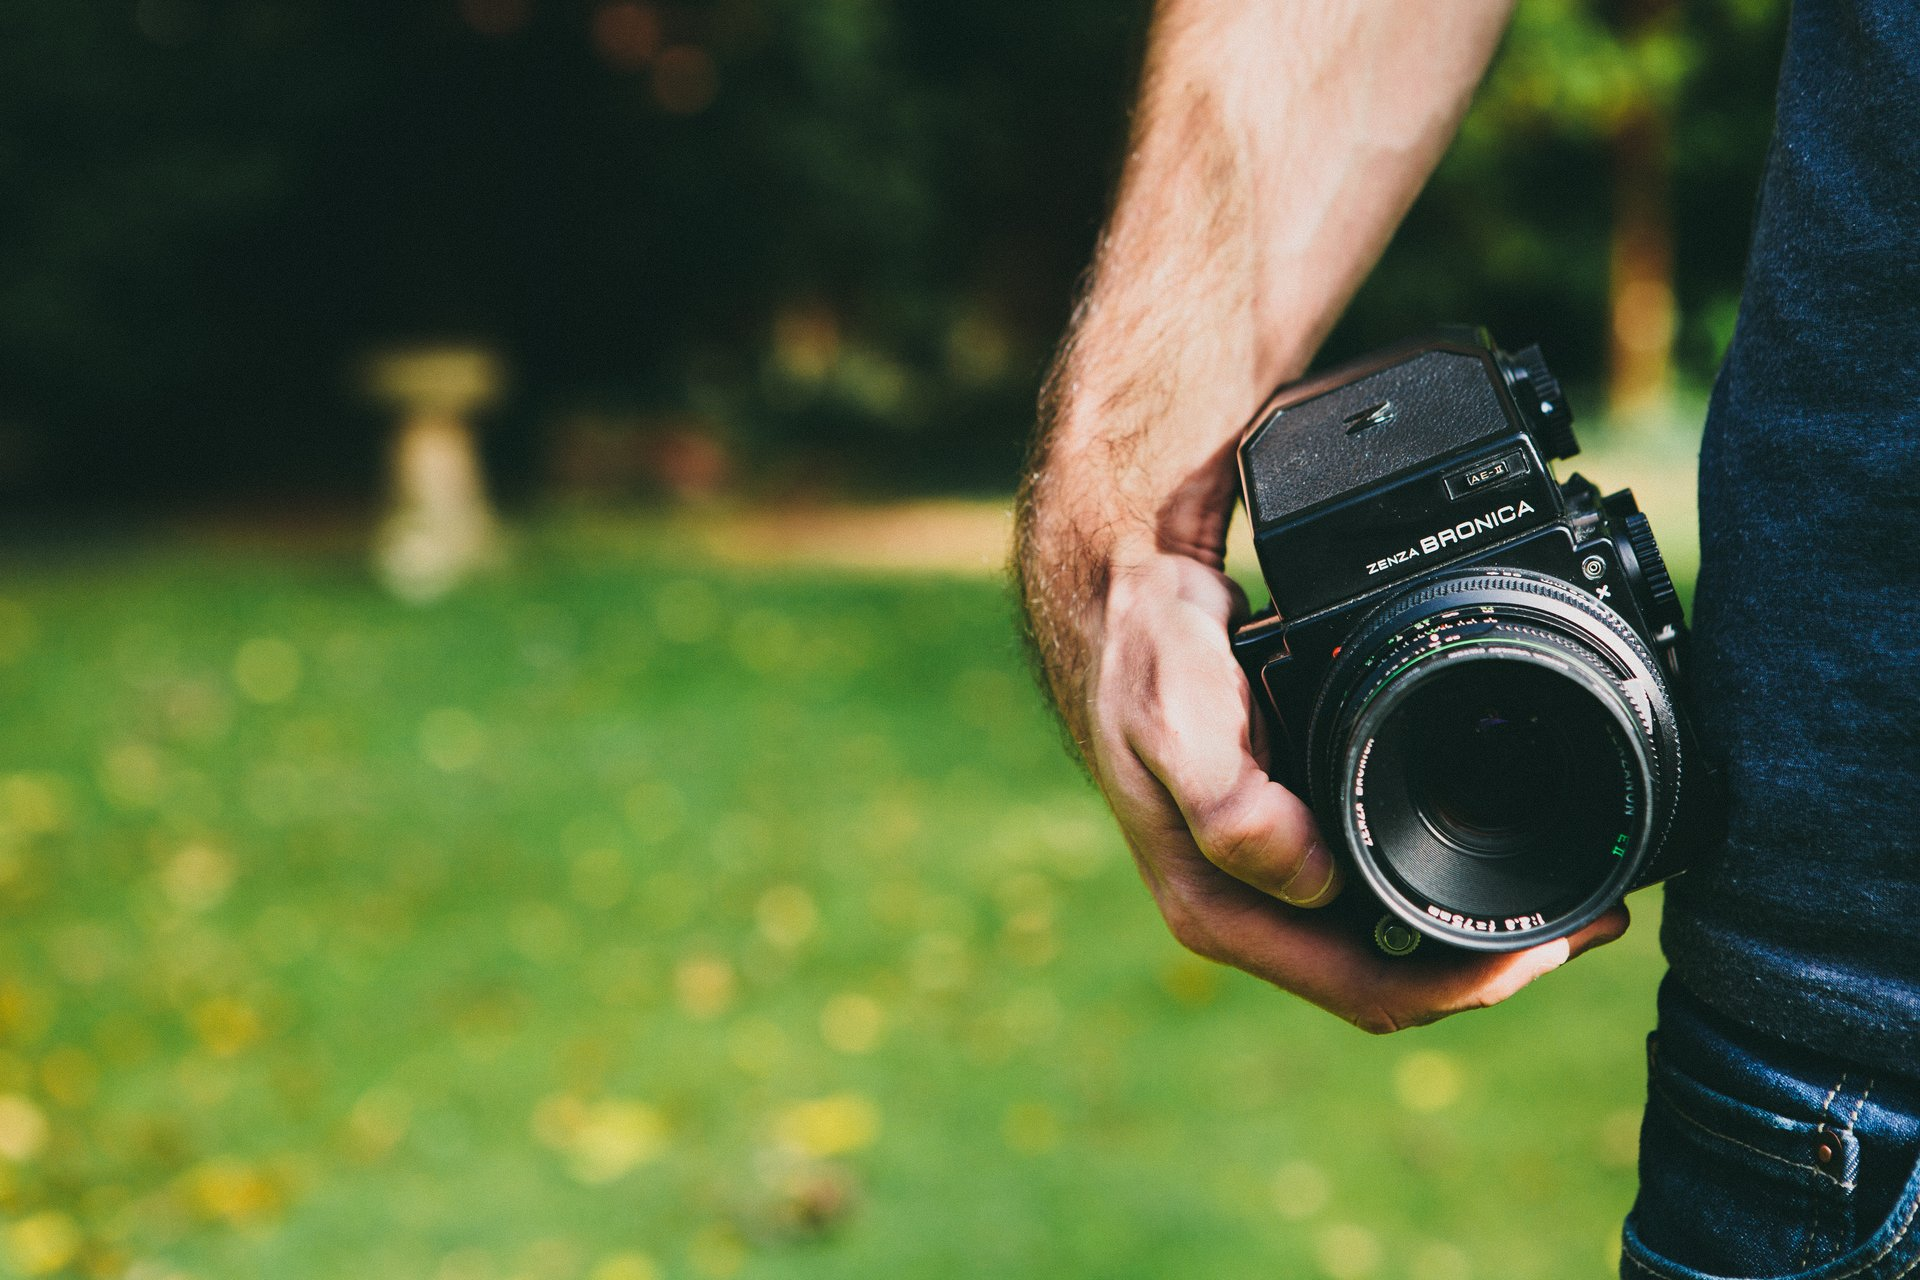 Man with Bronica camera (Pic: Little Visuals/pexels)